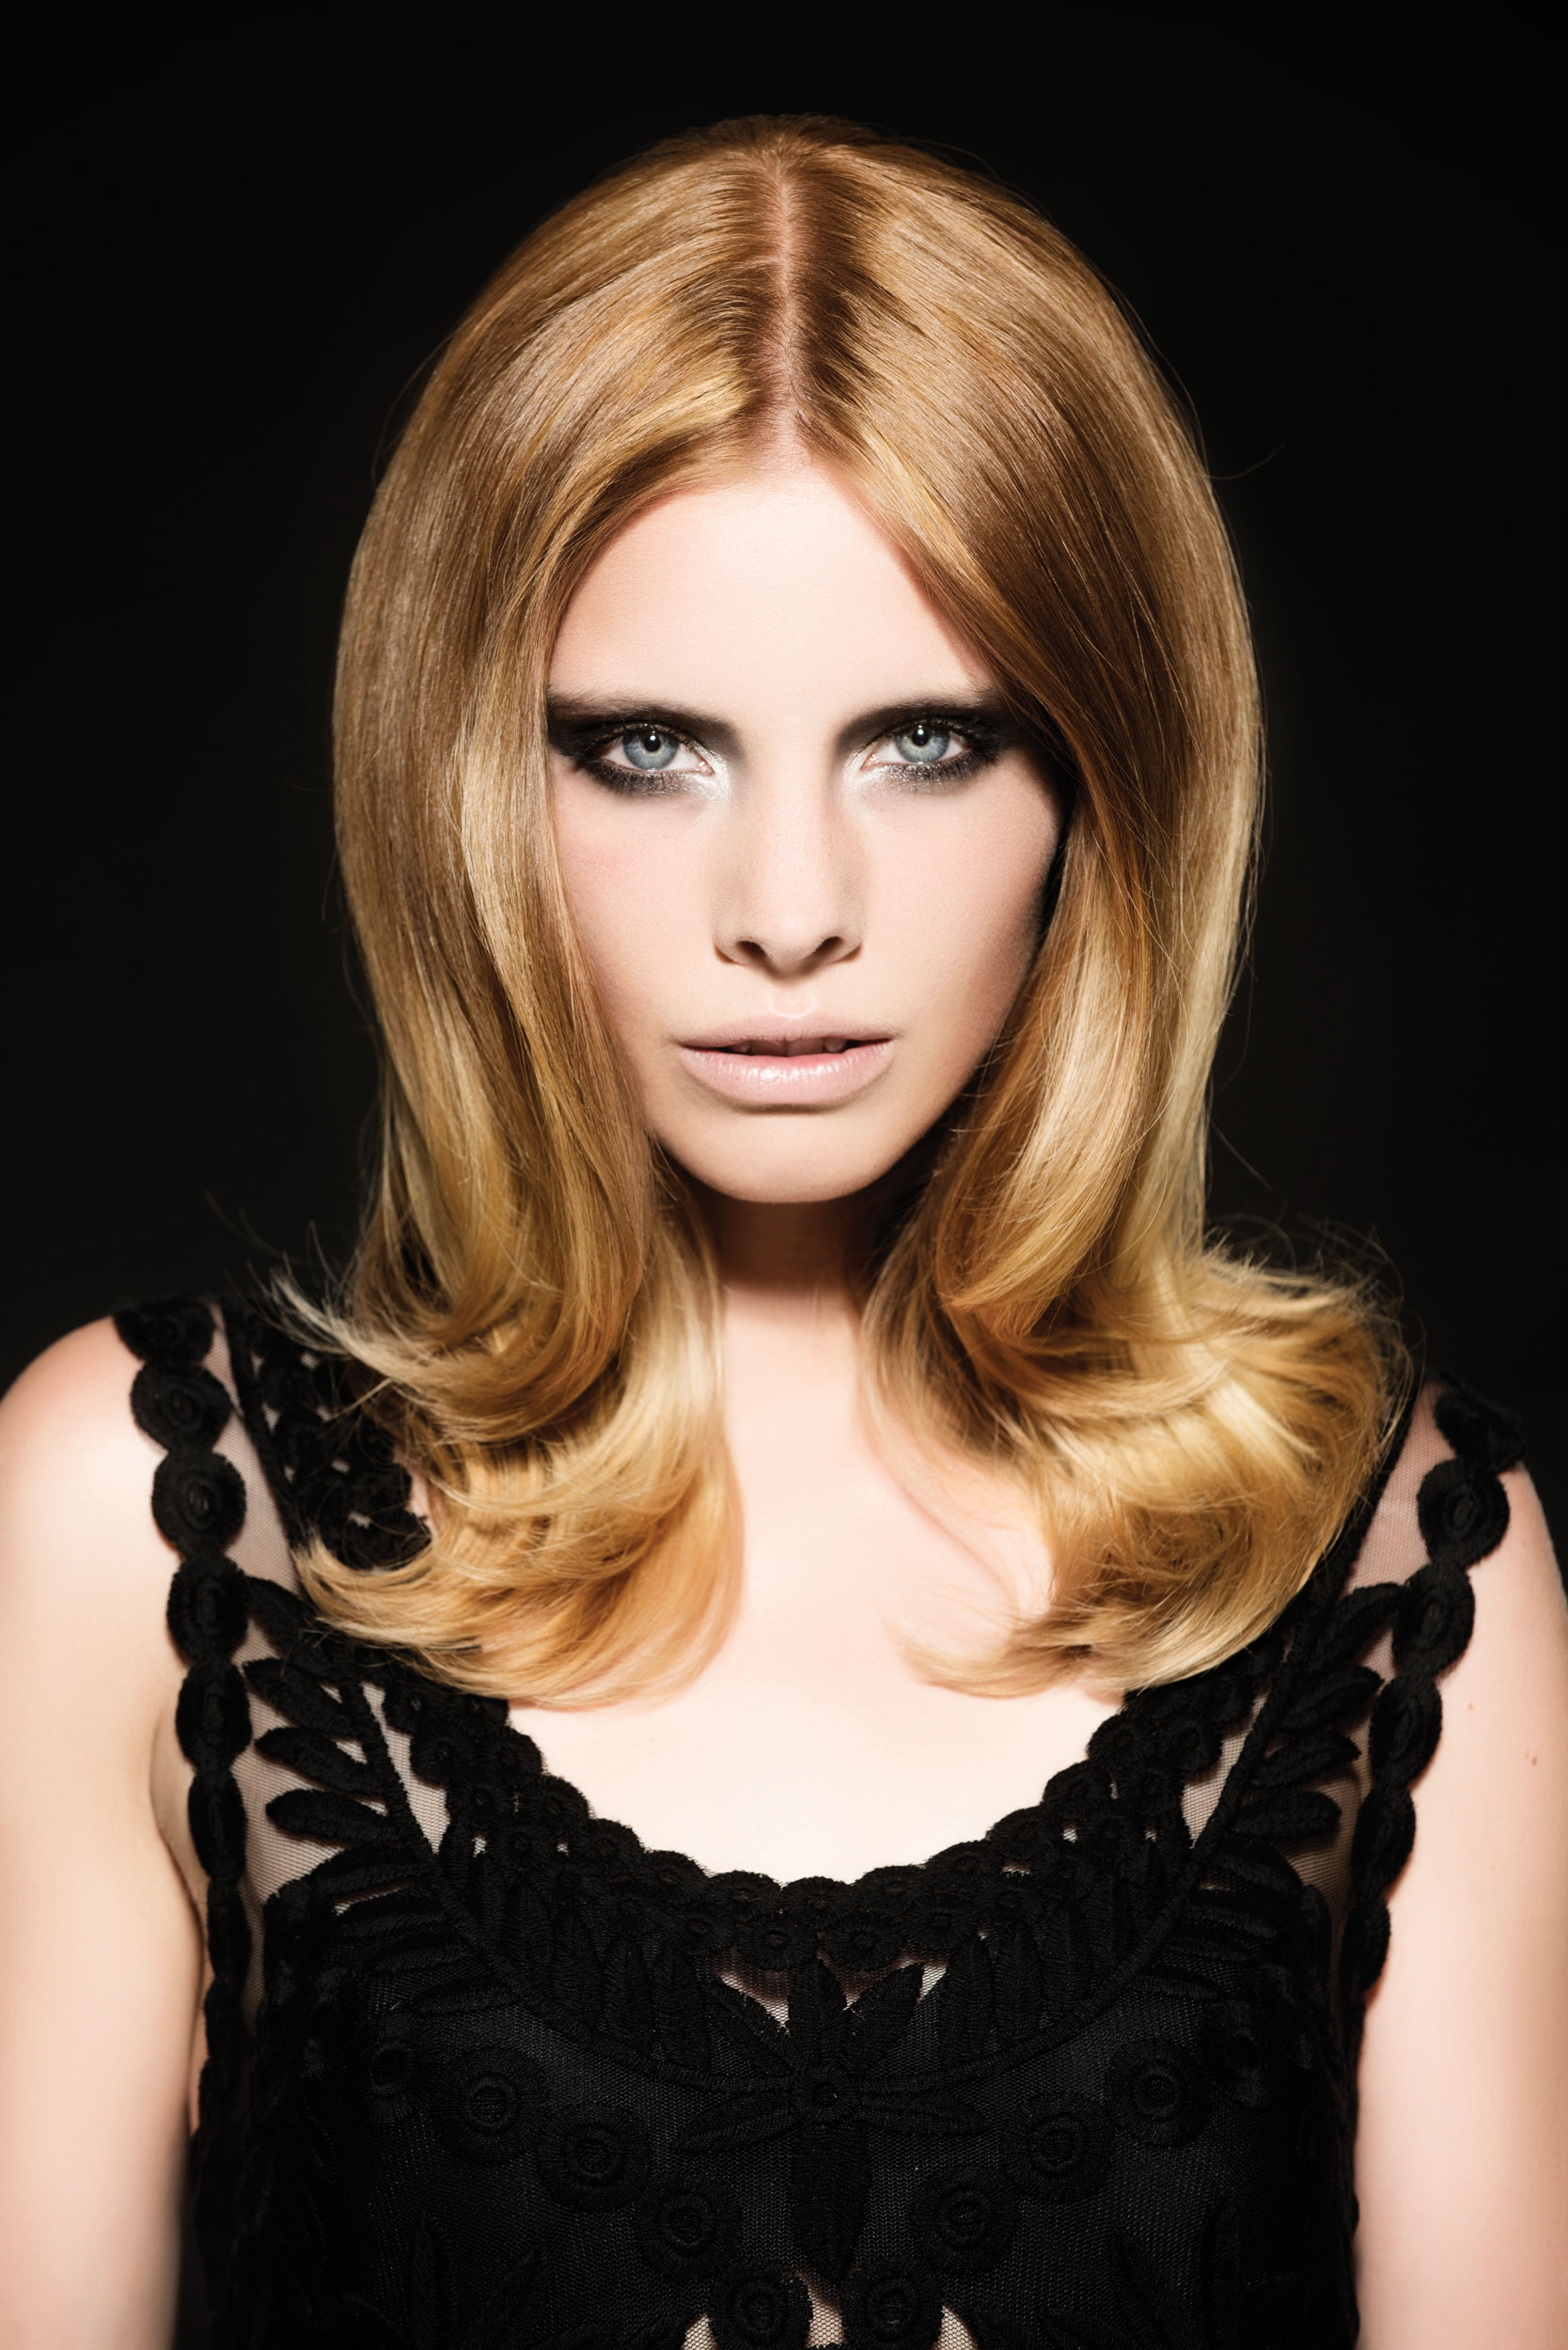 Farouk Color How-To: Multidimensional Blonde